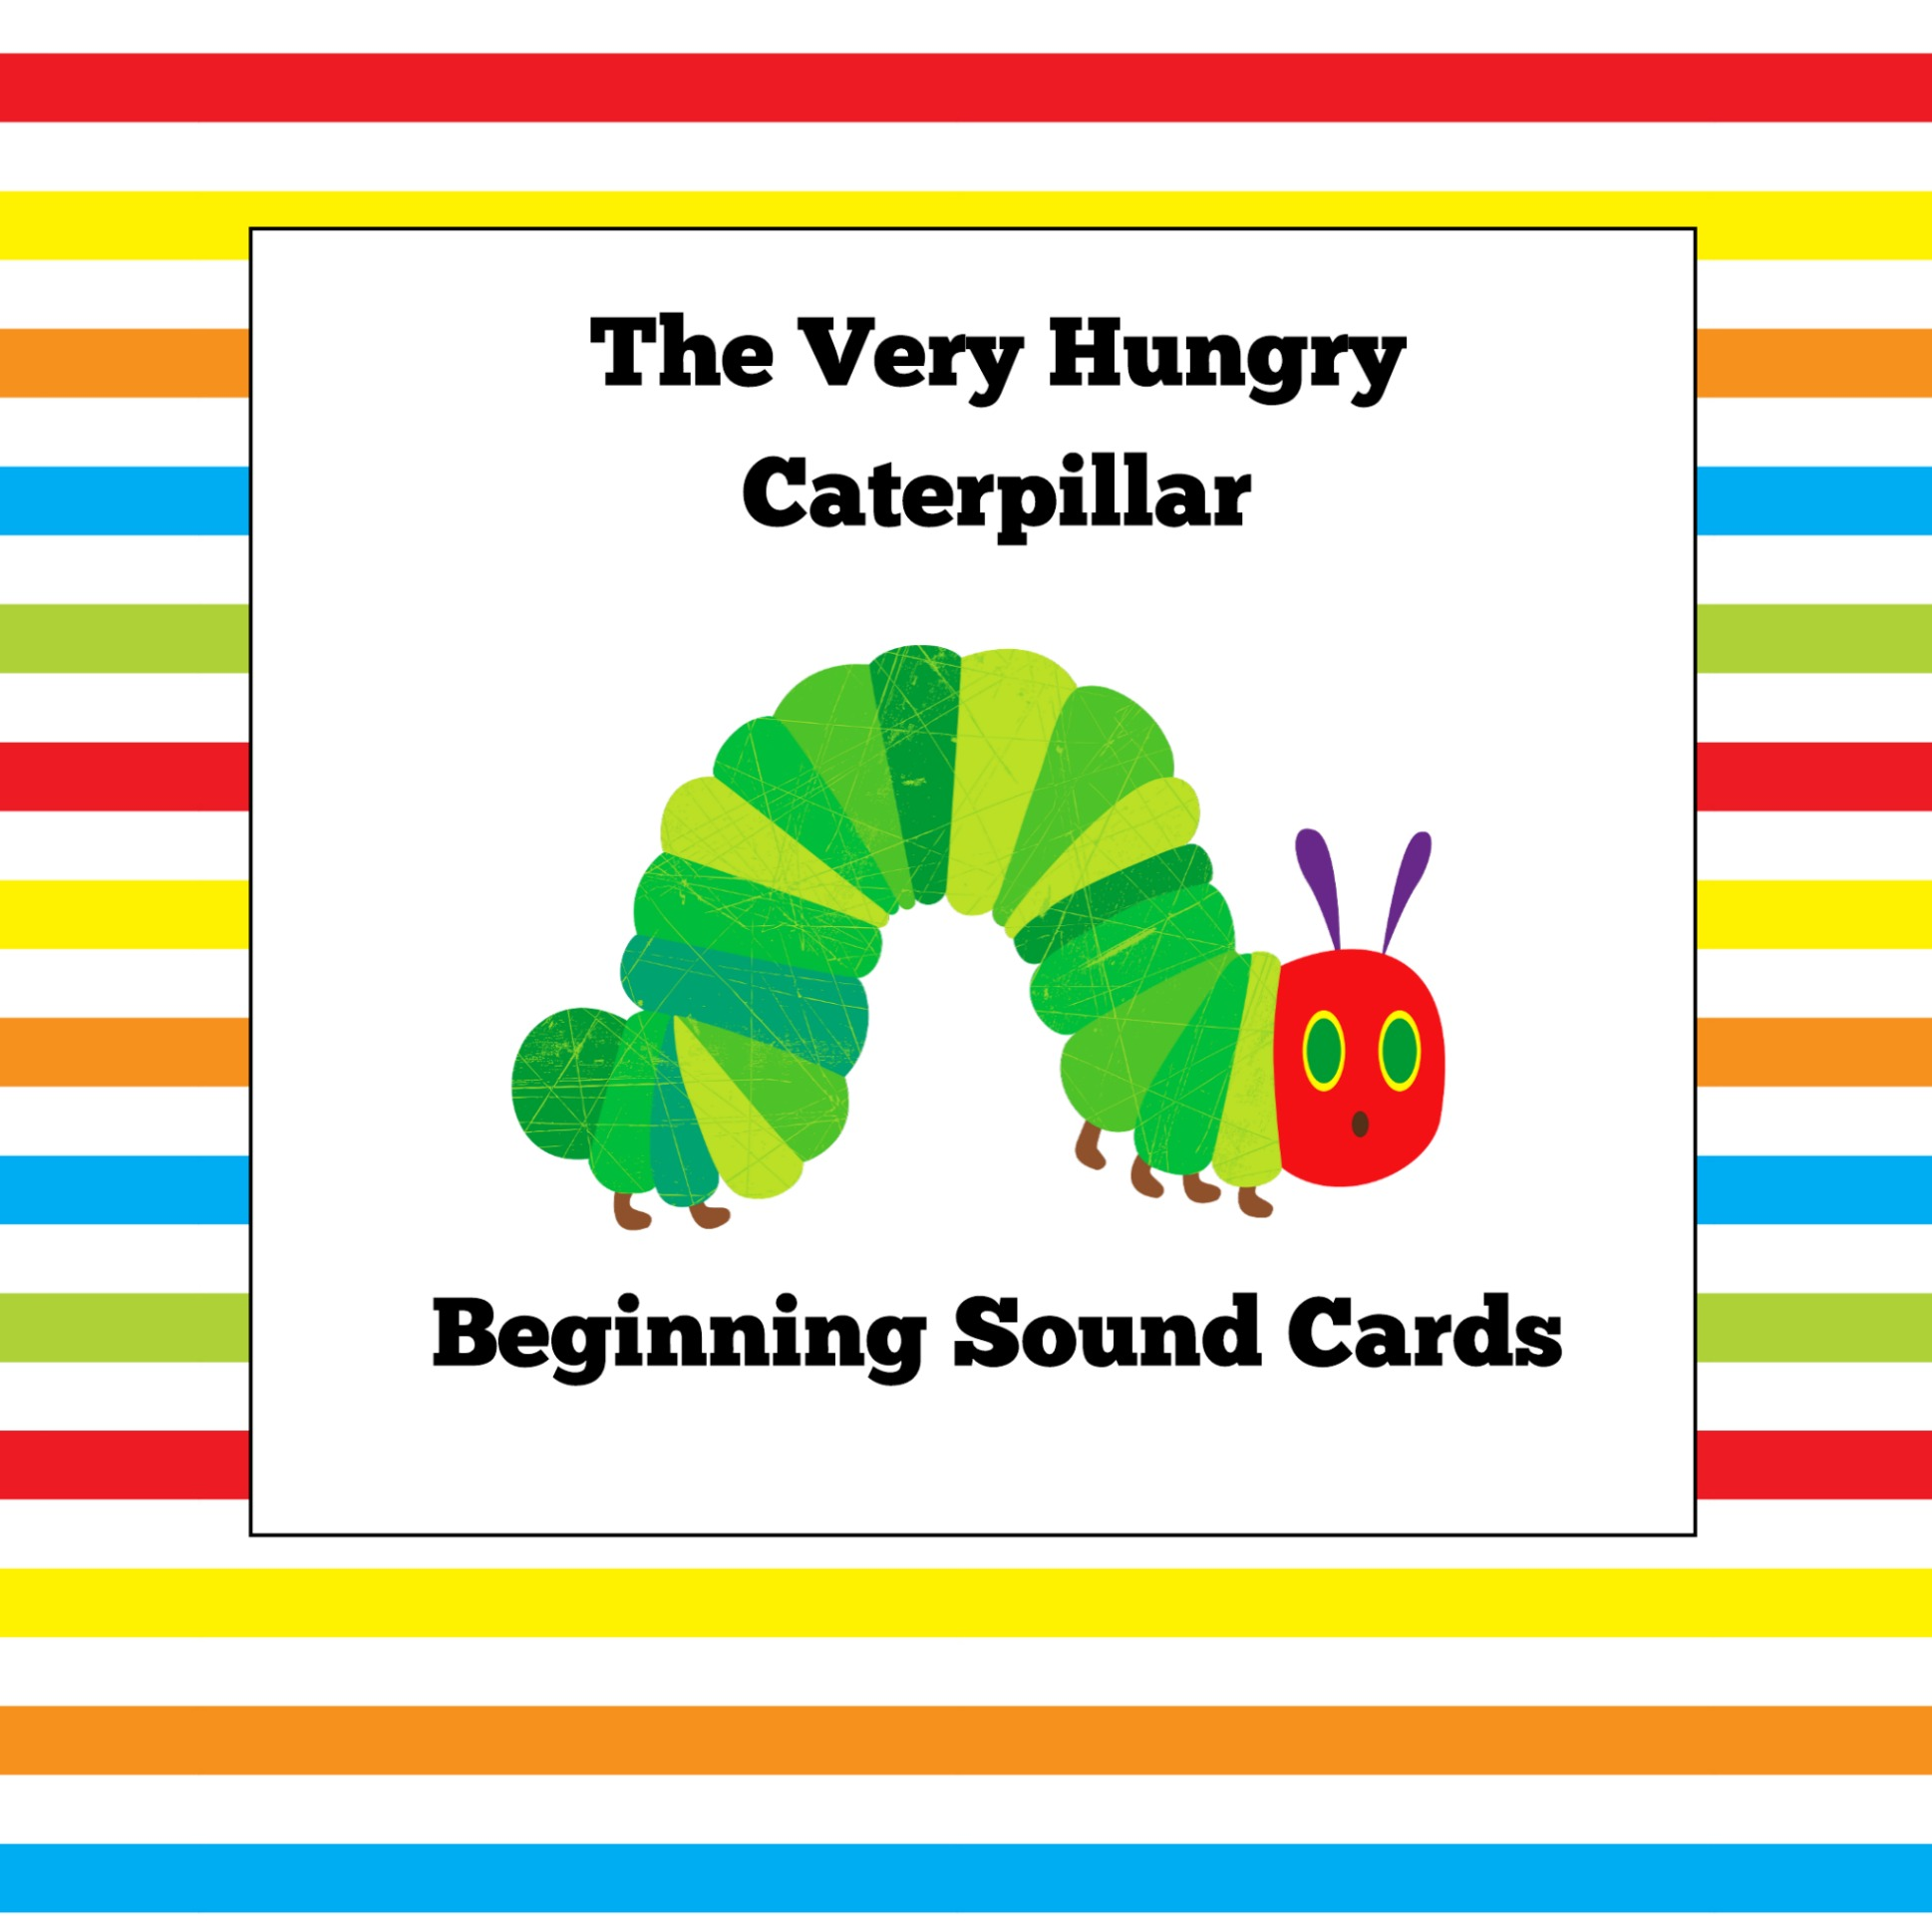 photograph about The Very Hungry Caterpillar Story Printable called The Exceptionally Hungry Caterpillar Starting Strong Playing cards